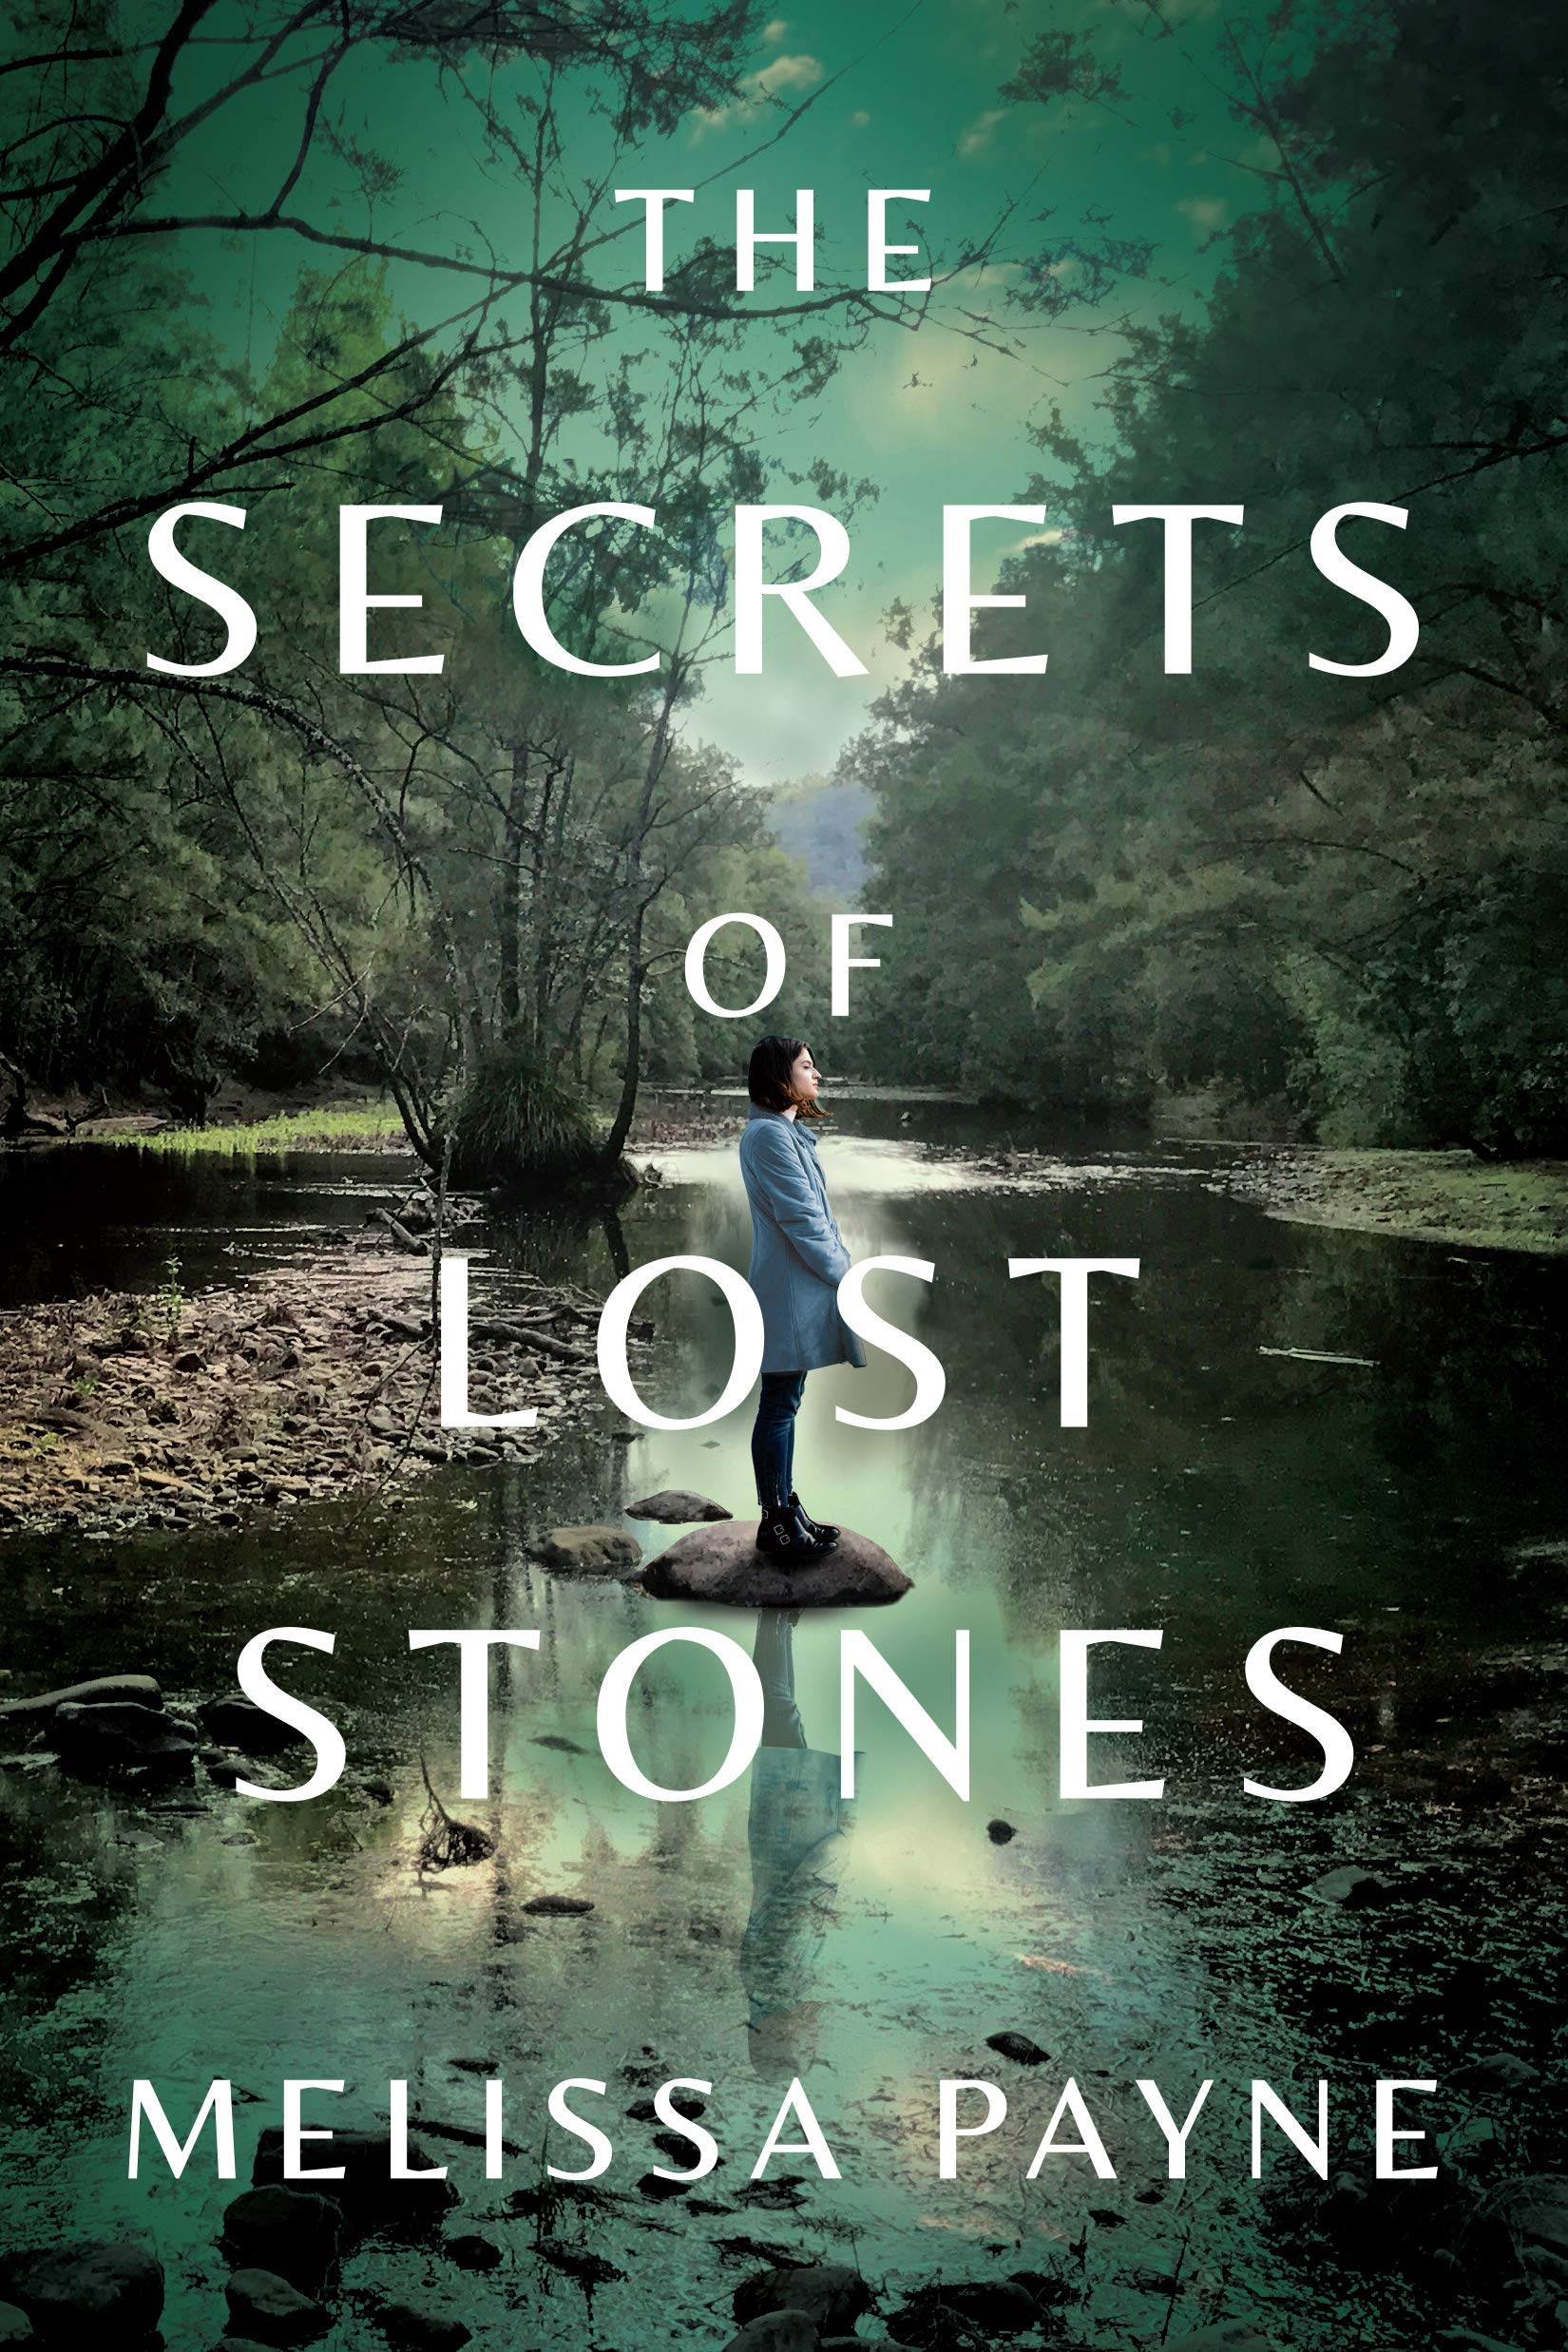 The Secrets of Lost Stones by Melissa Payne